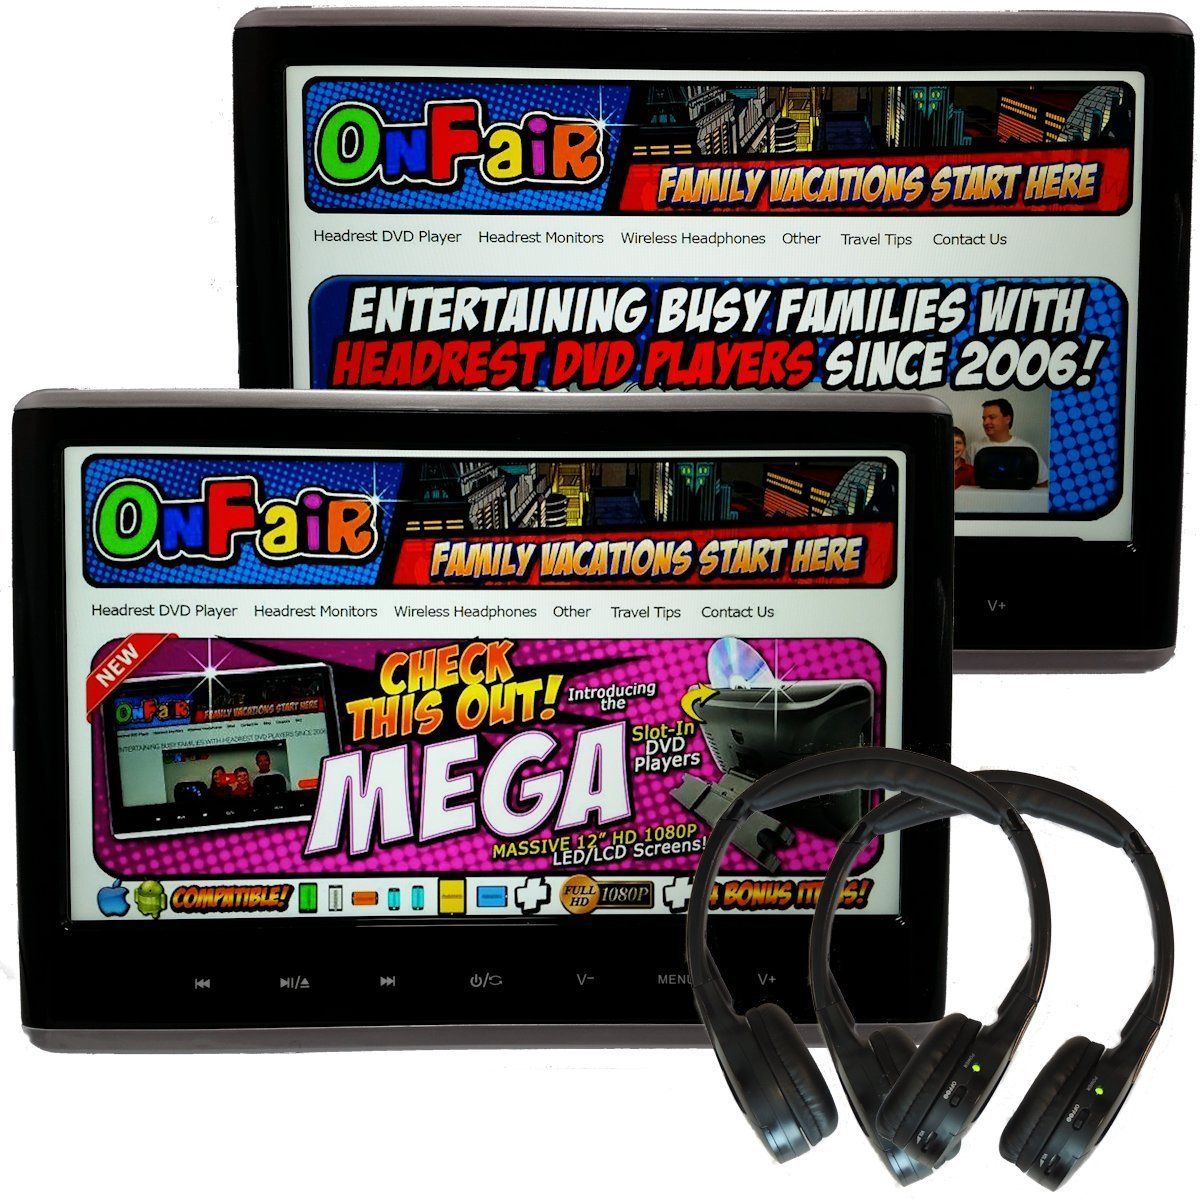 [Pair] Autotain MEGA 12 Inch Headrest Monitor DVD Player +HDMI +1080P +Home Power Supply +Cloud IR Headphones +BONUSES